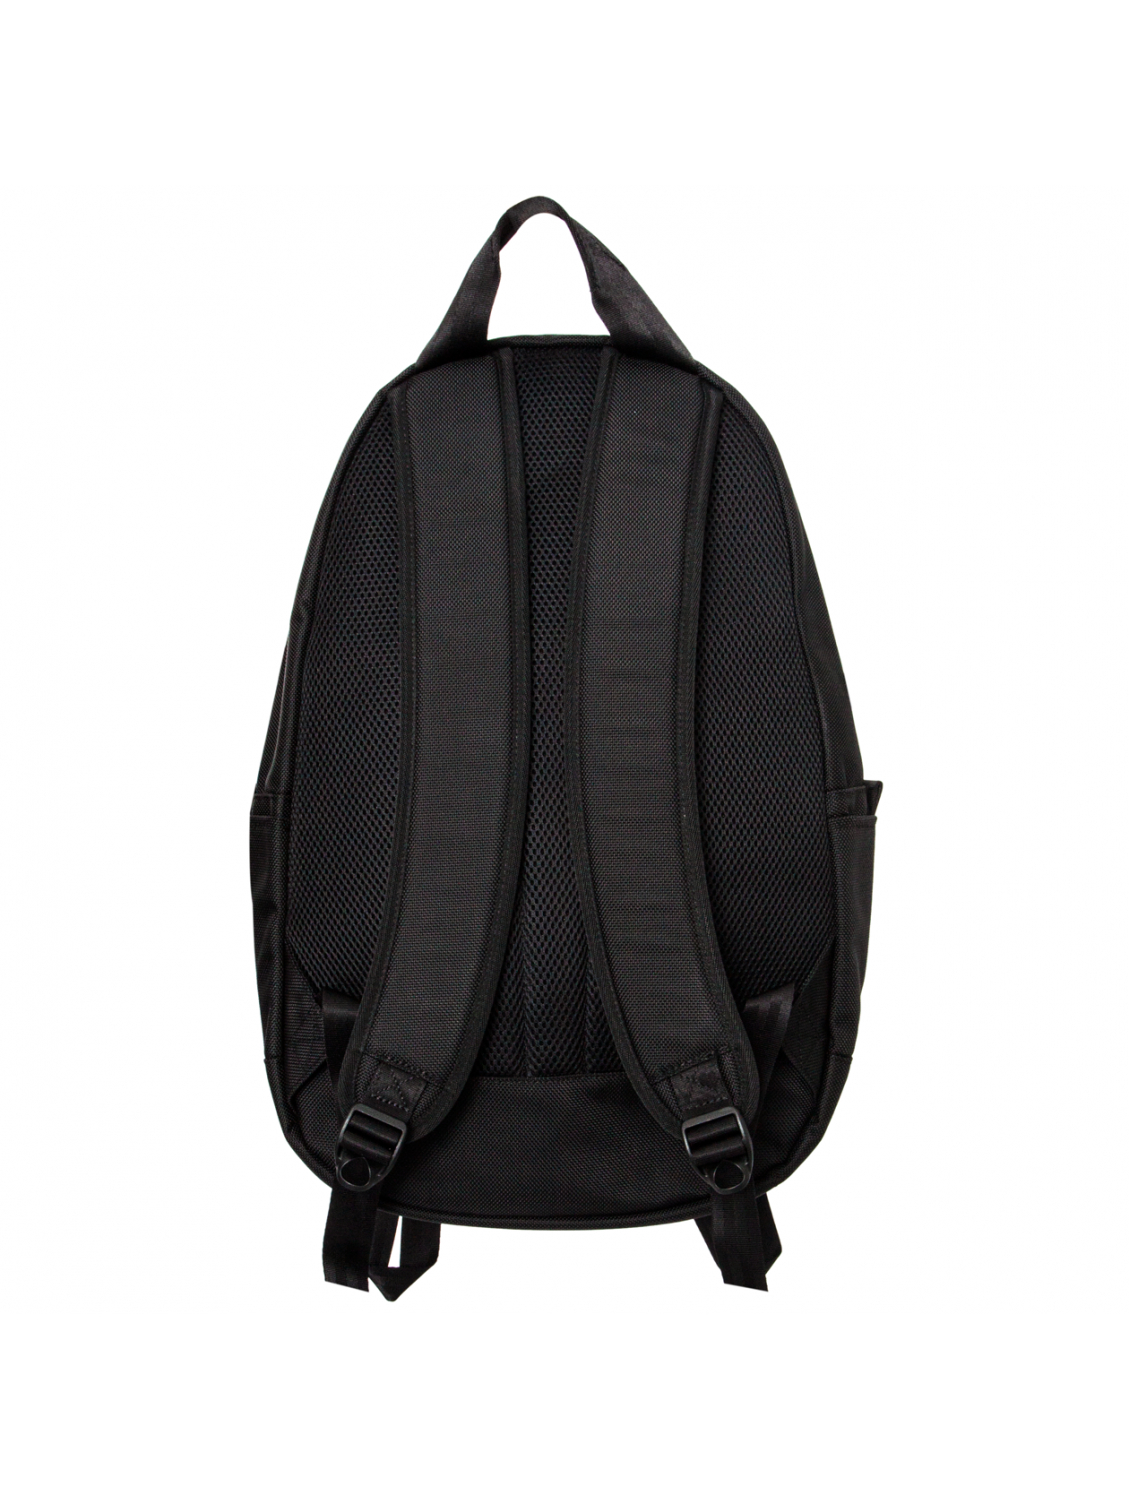 97562dc12626 Yohji Yamamoto New Era Day Pack Bag Black in Black for Men - Lyst